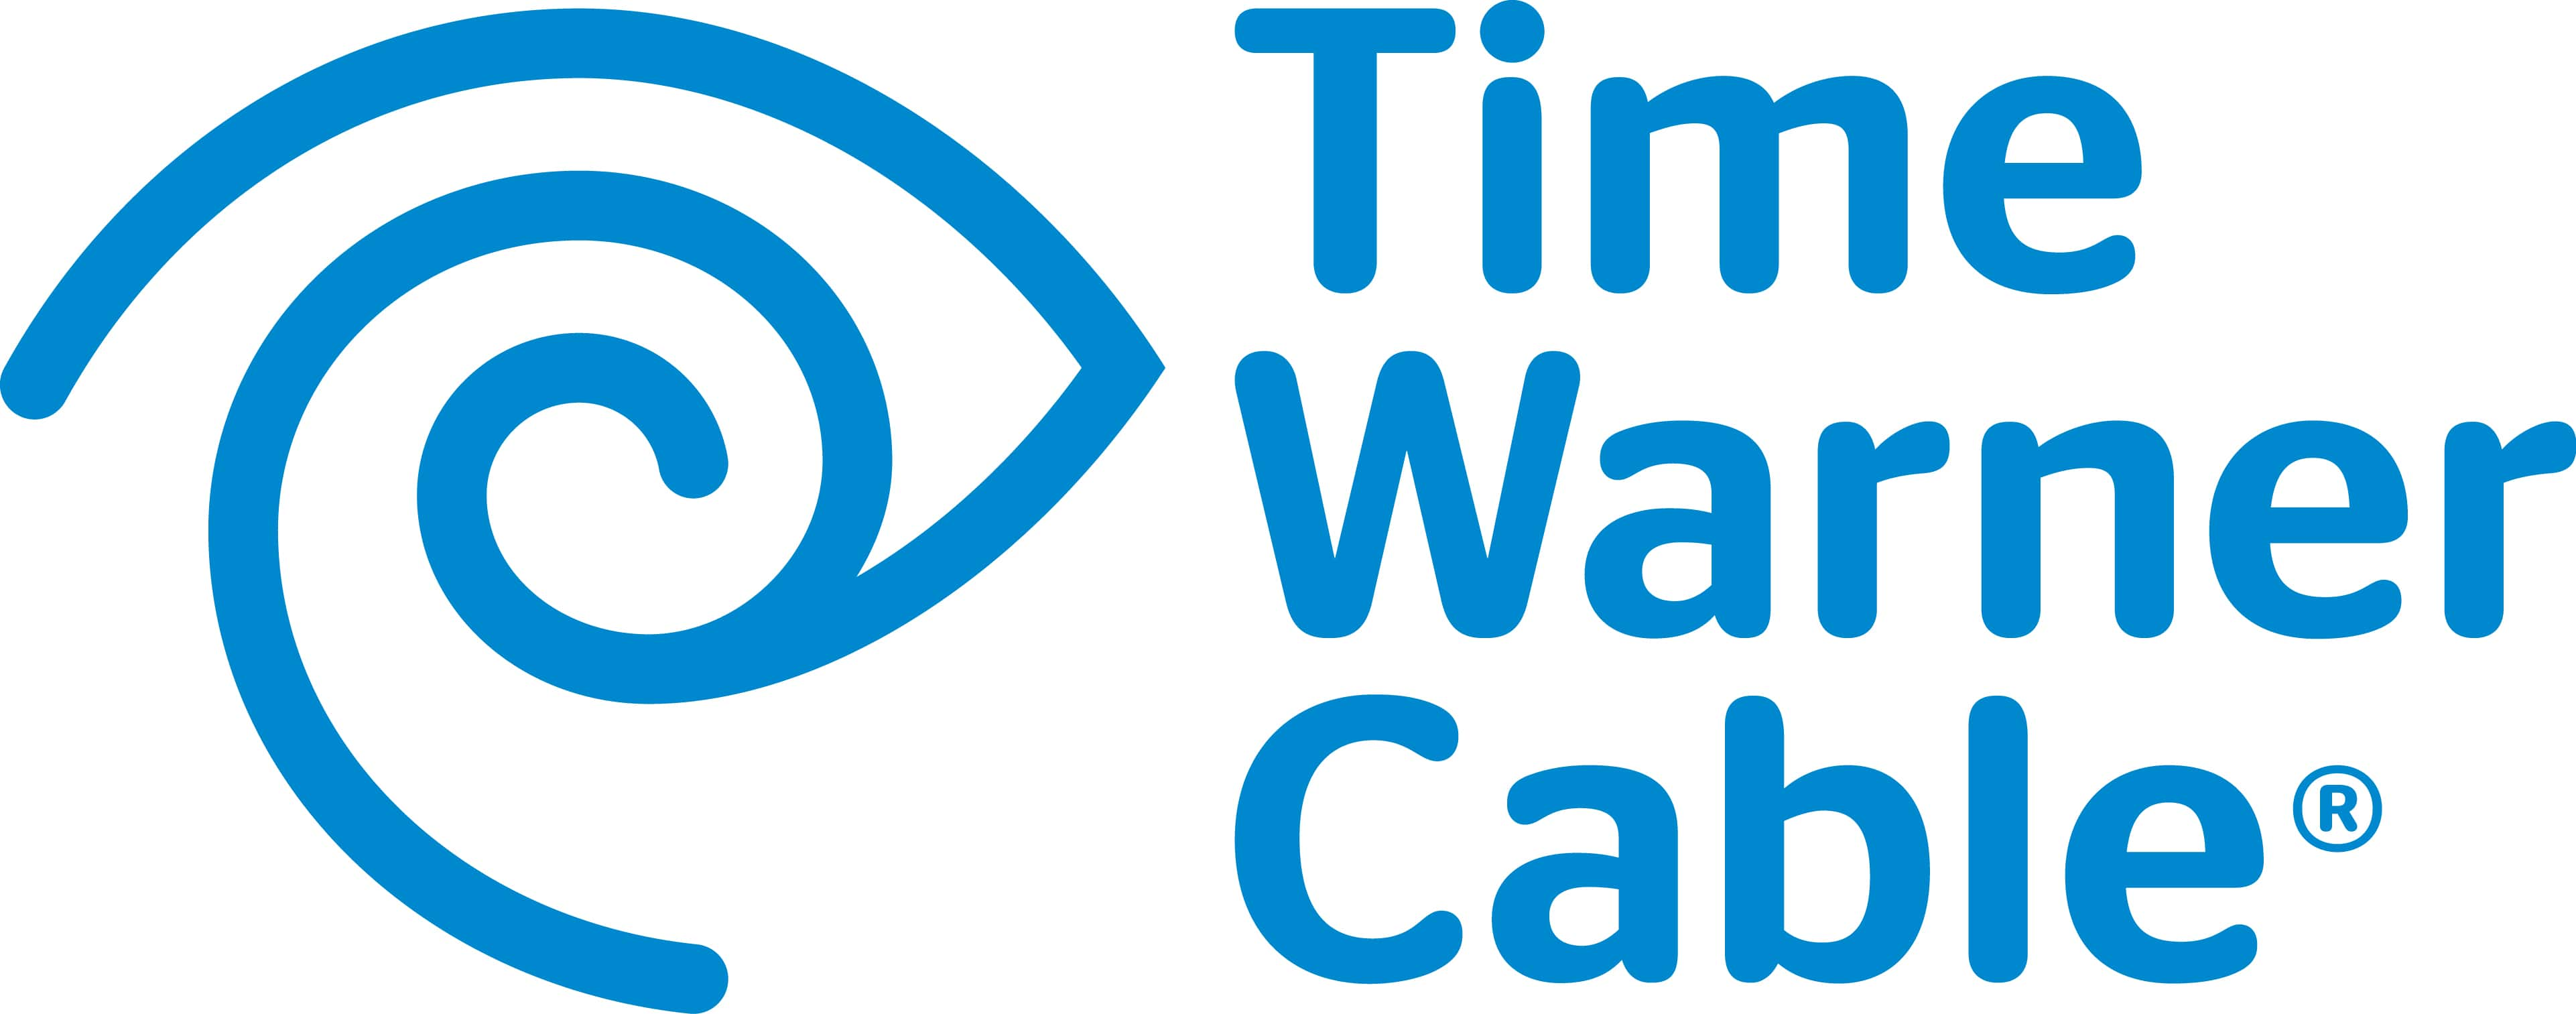 Time Warner Cable Internet Speed Increase Free!  - Just Power Cycle Your Modem.